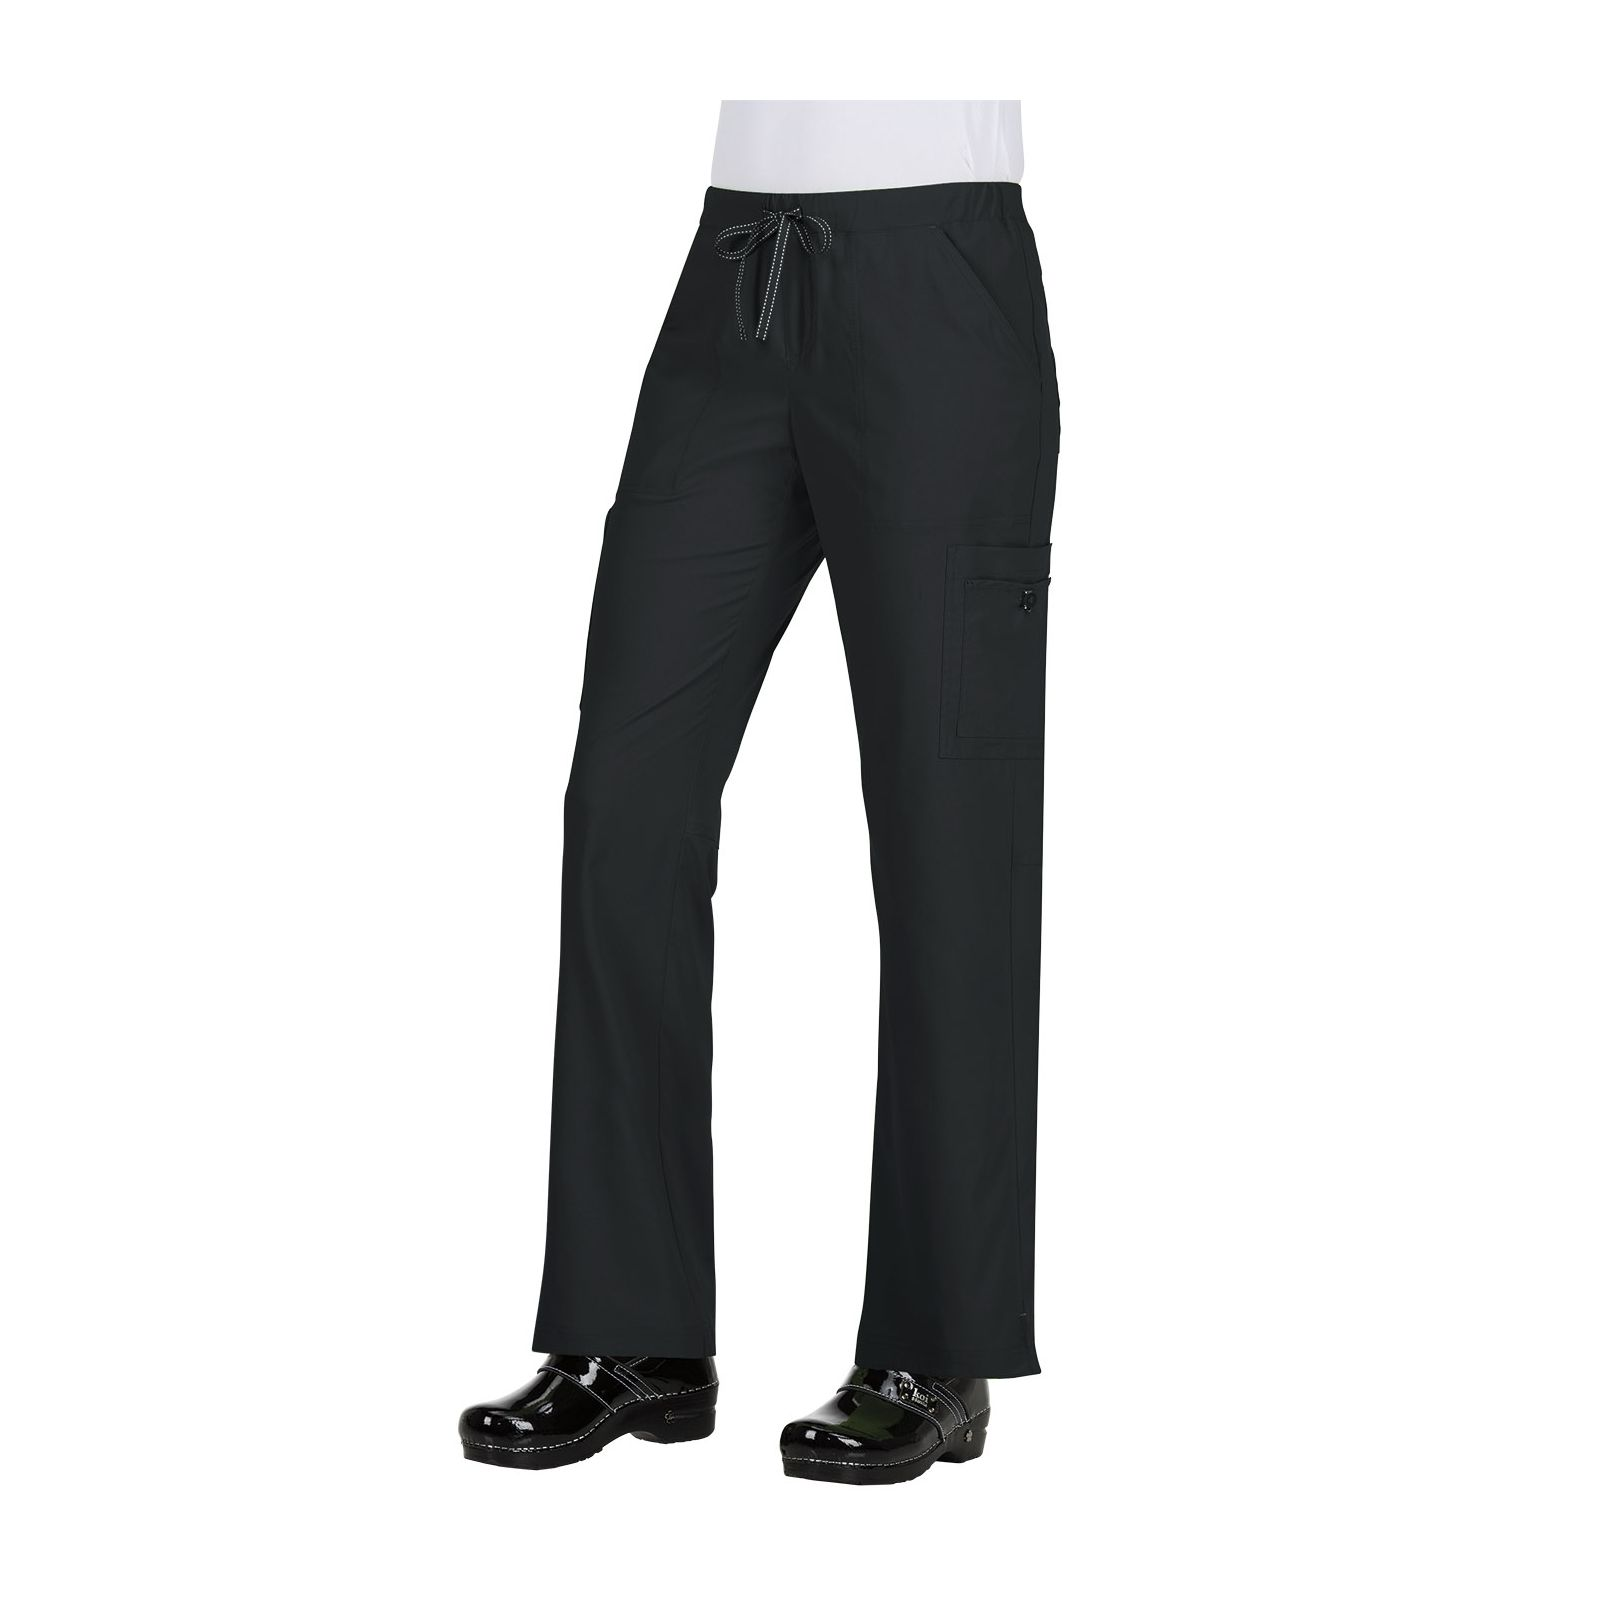 "Pantalon médical Femme Koi ""Holly"", collection ""Koi Basics"" (731-) noir face"